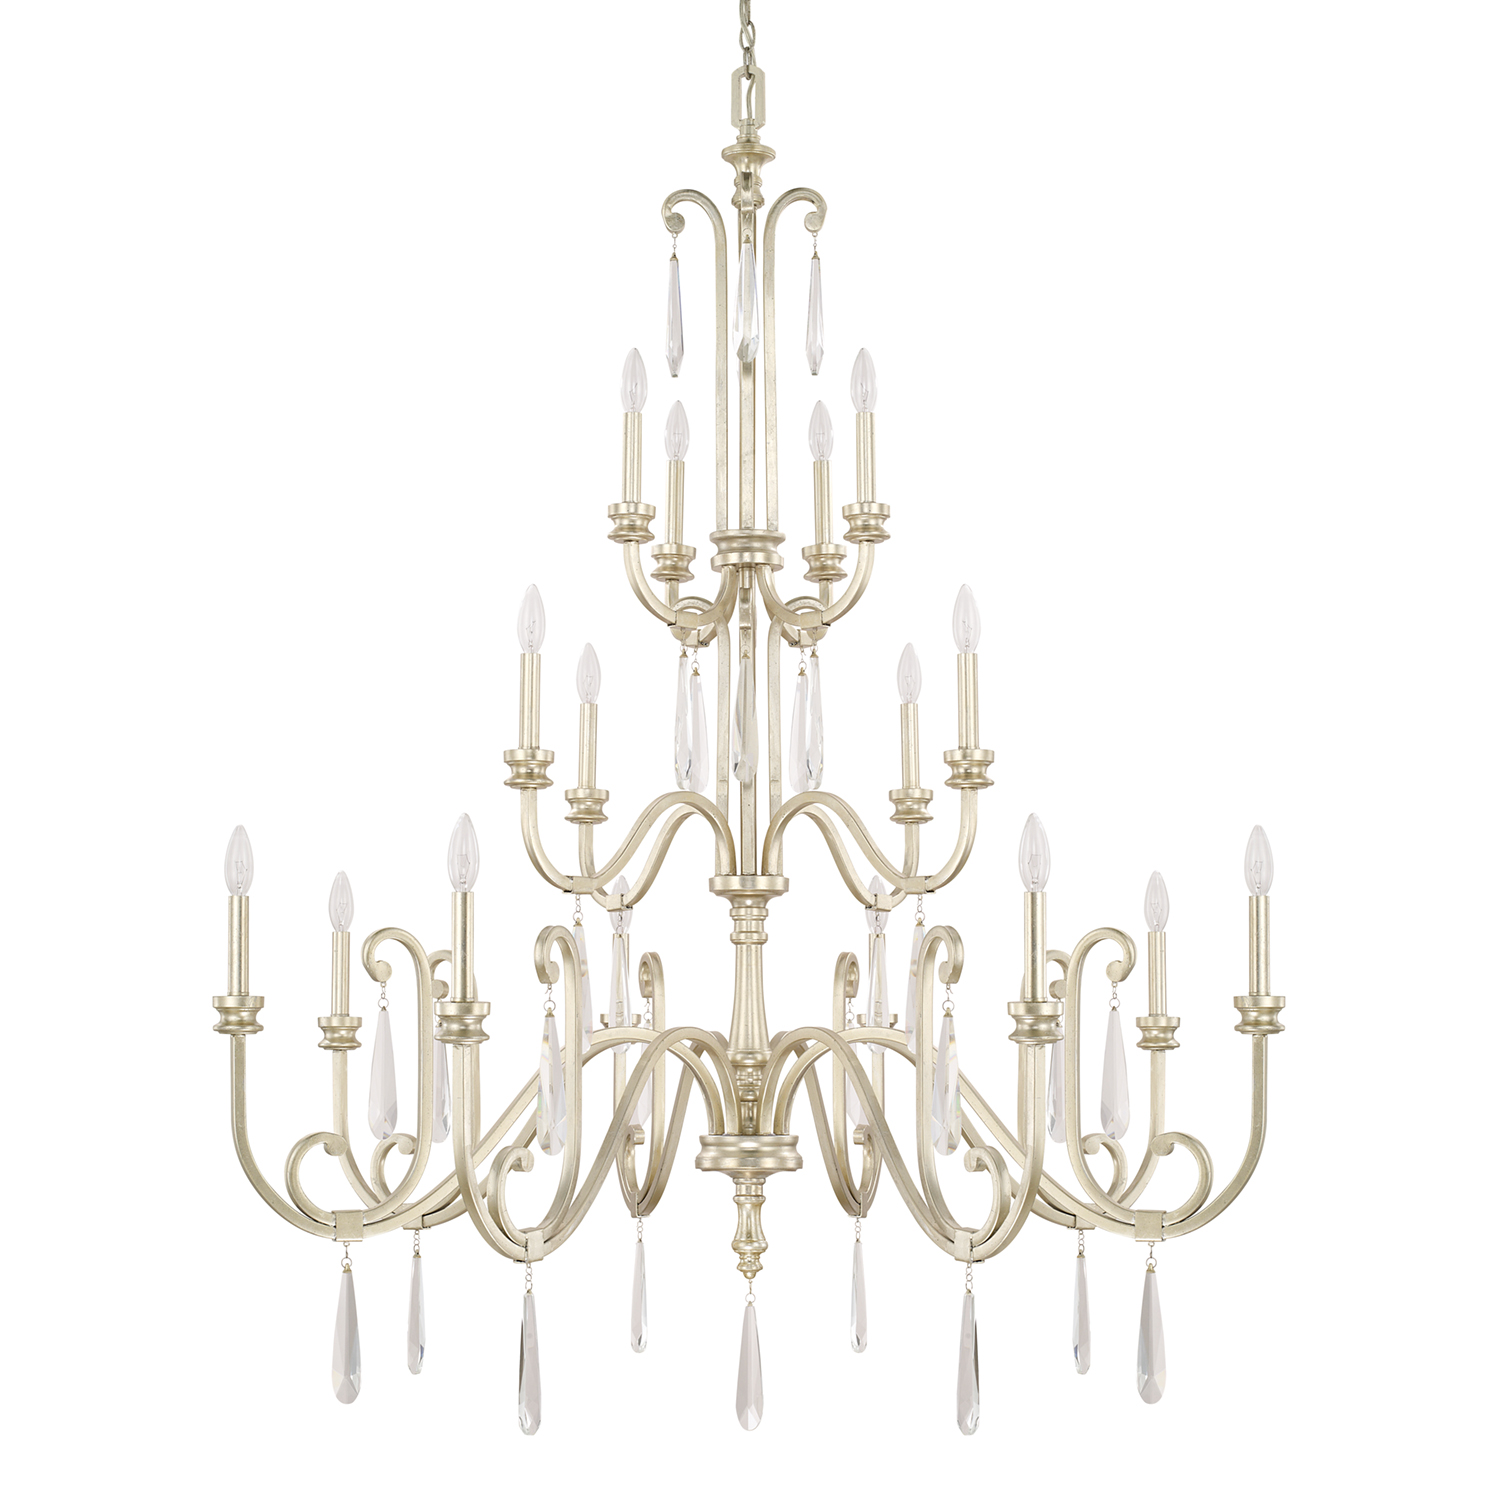 16 Light Chandelier from the Cambridge collection by Capital Lighting 413602WG